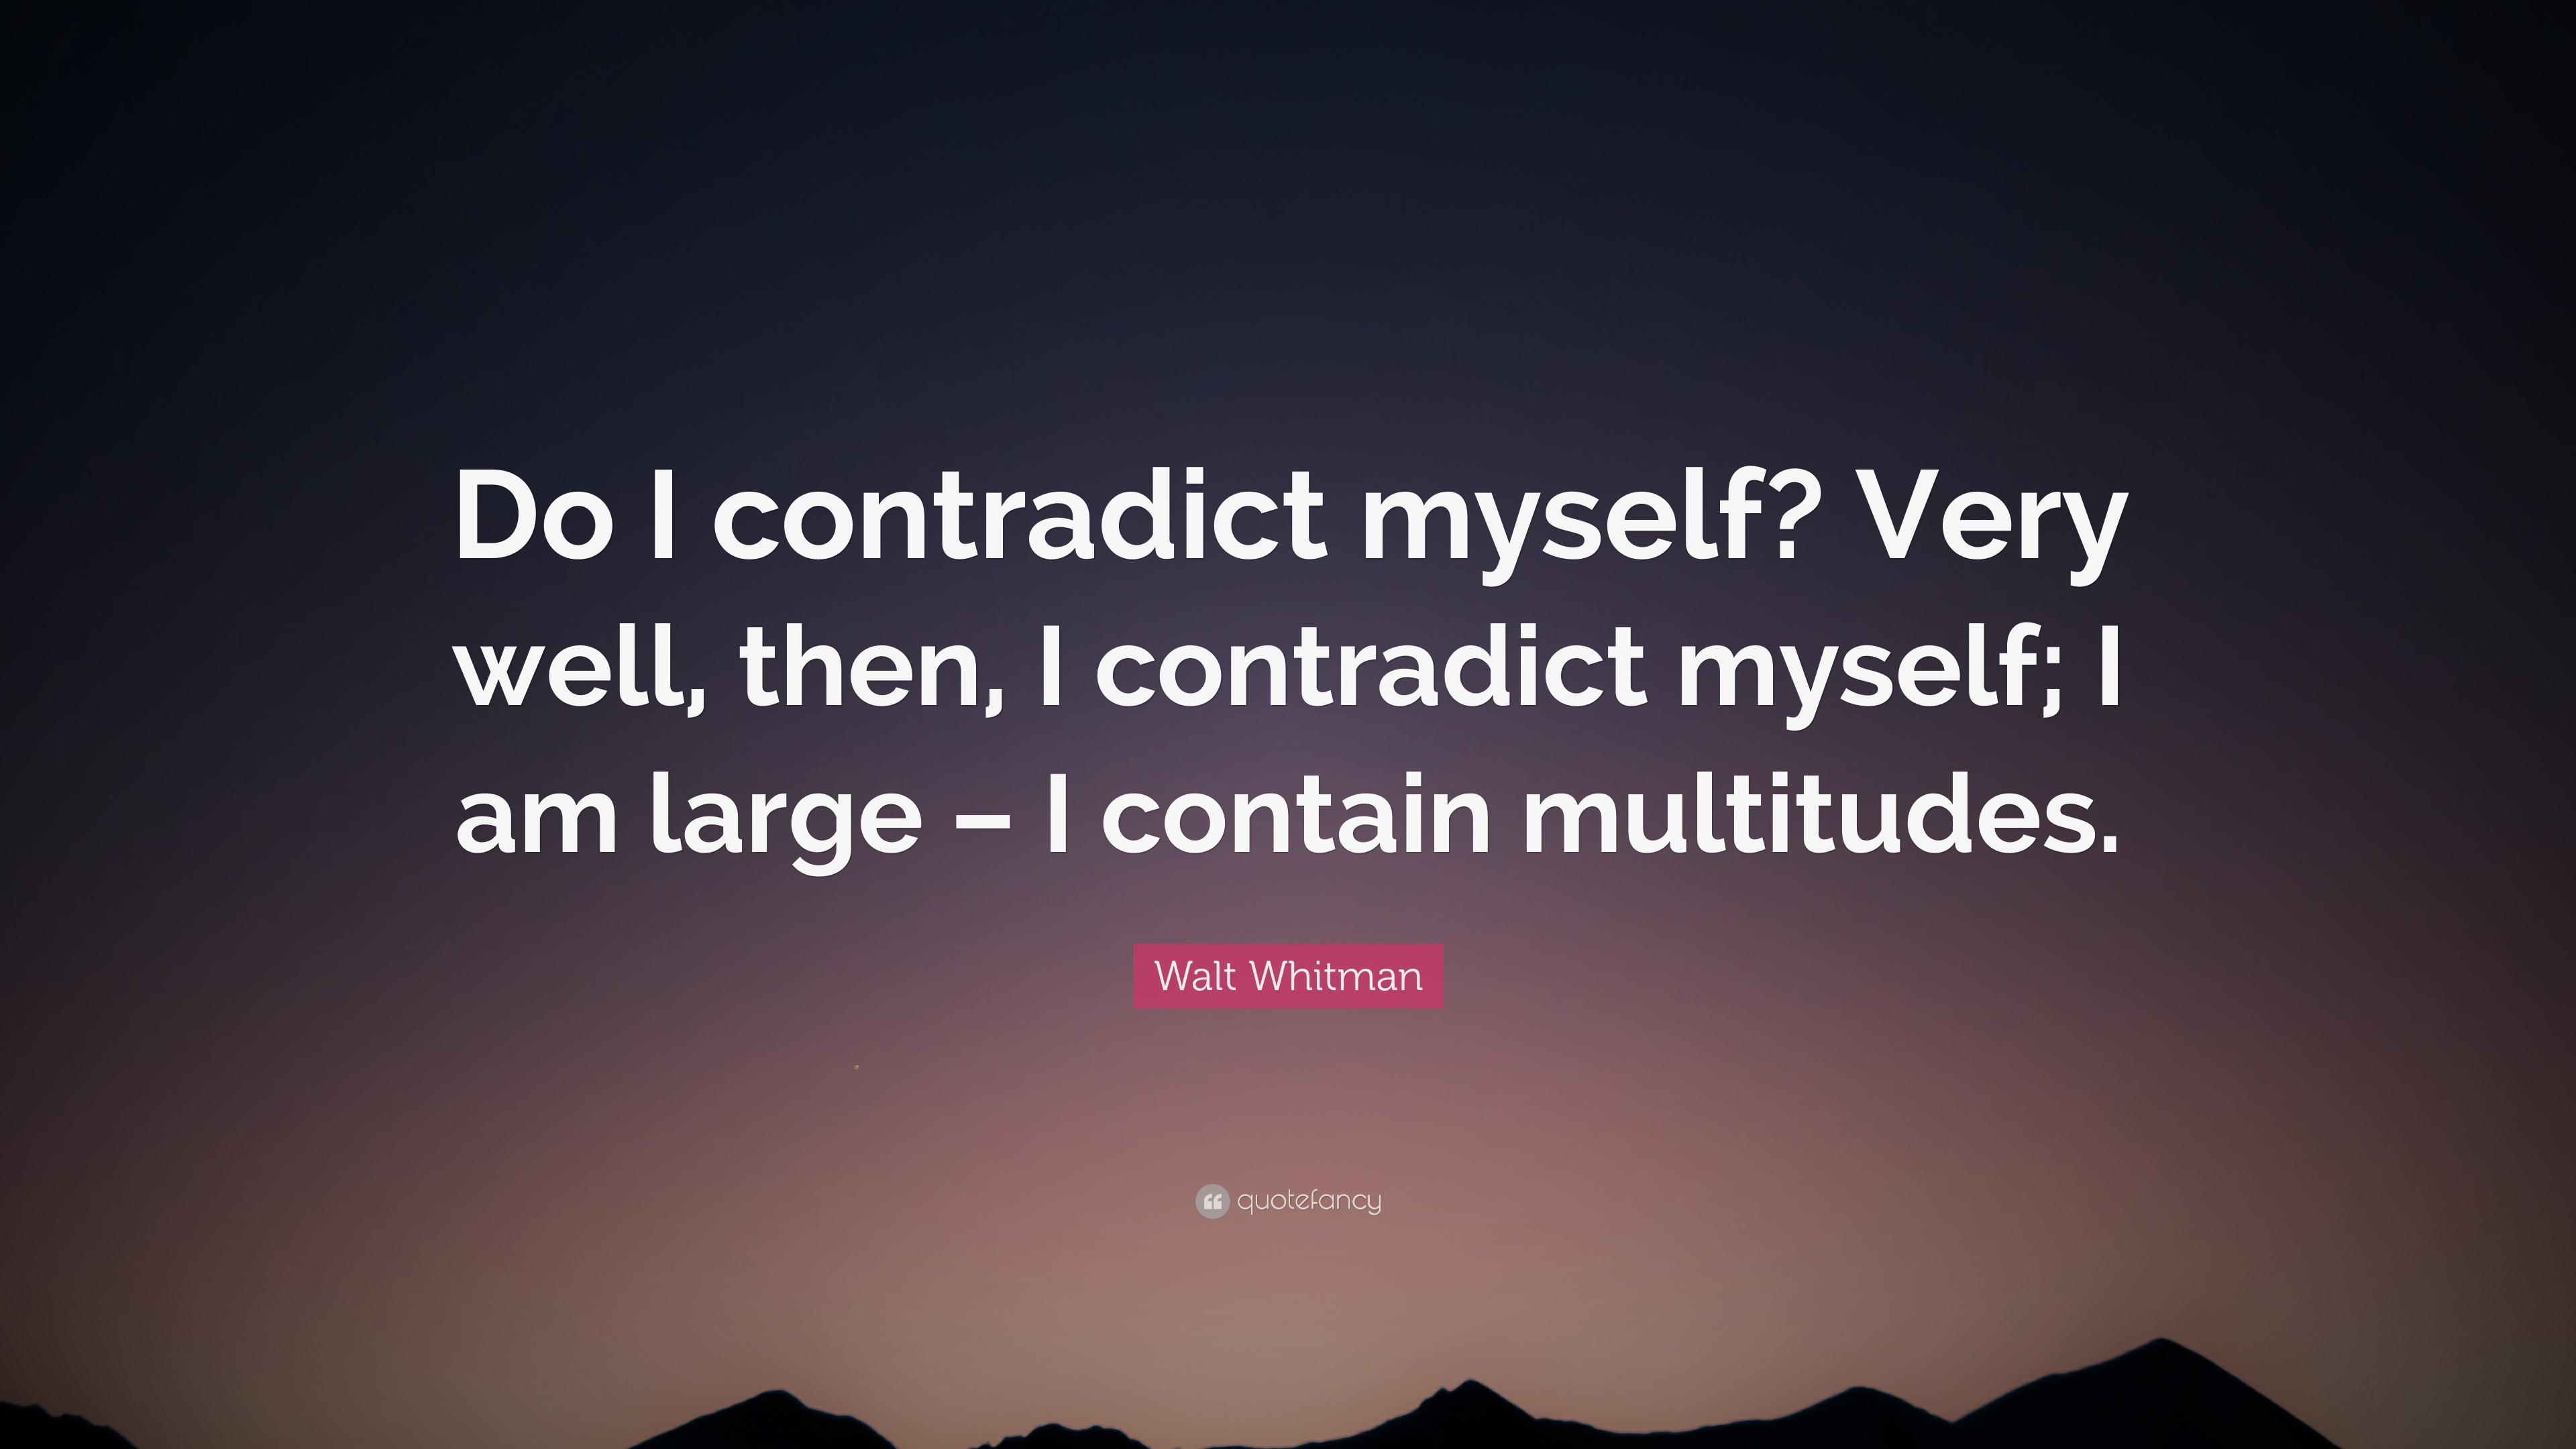 I Love Myself Quotes Wallpapers Walt Whitman Quote Do I Contradict Myself Very Well